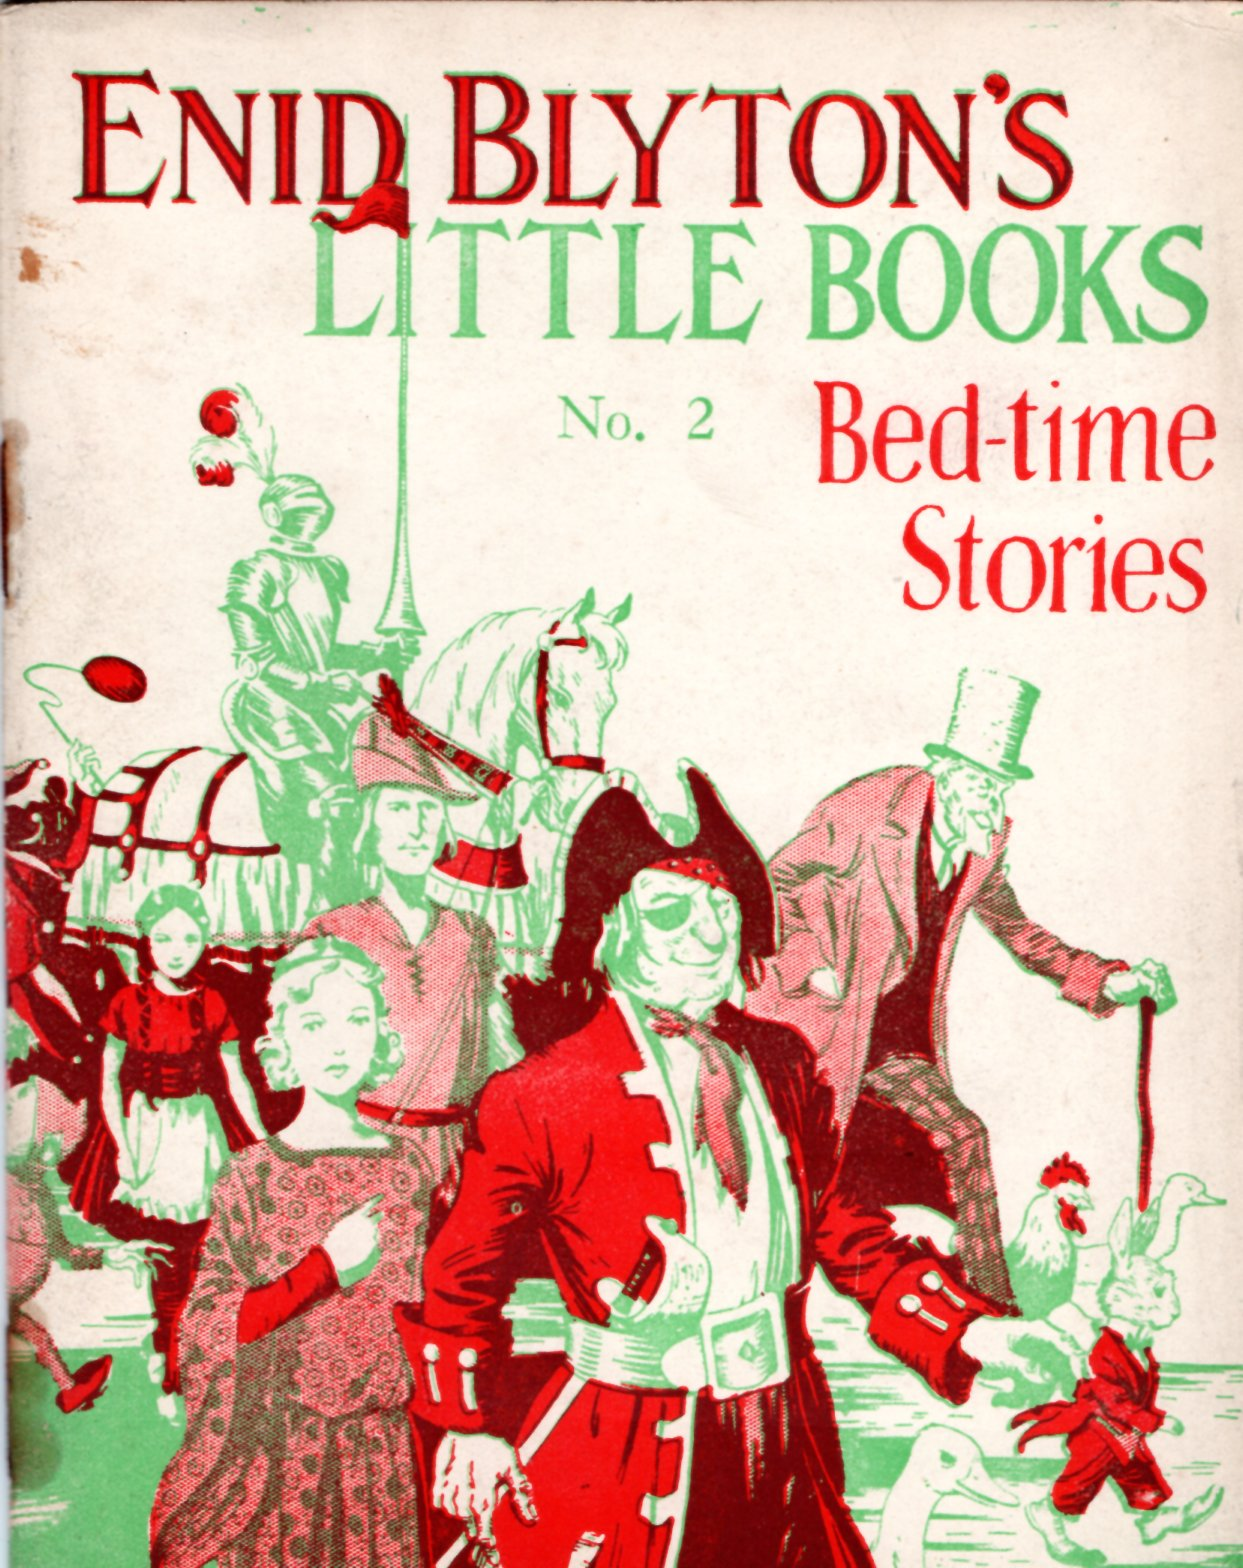 Image for Enid Blyton's Little Books No. 2: Bed-time Stories